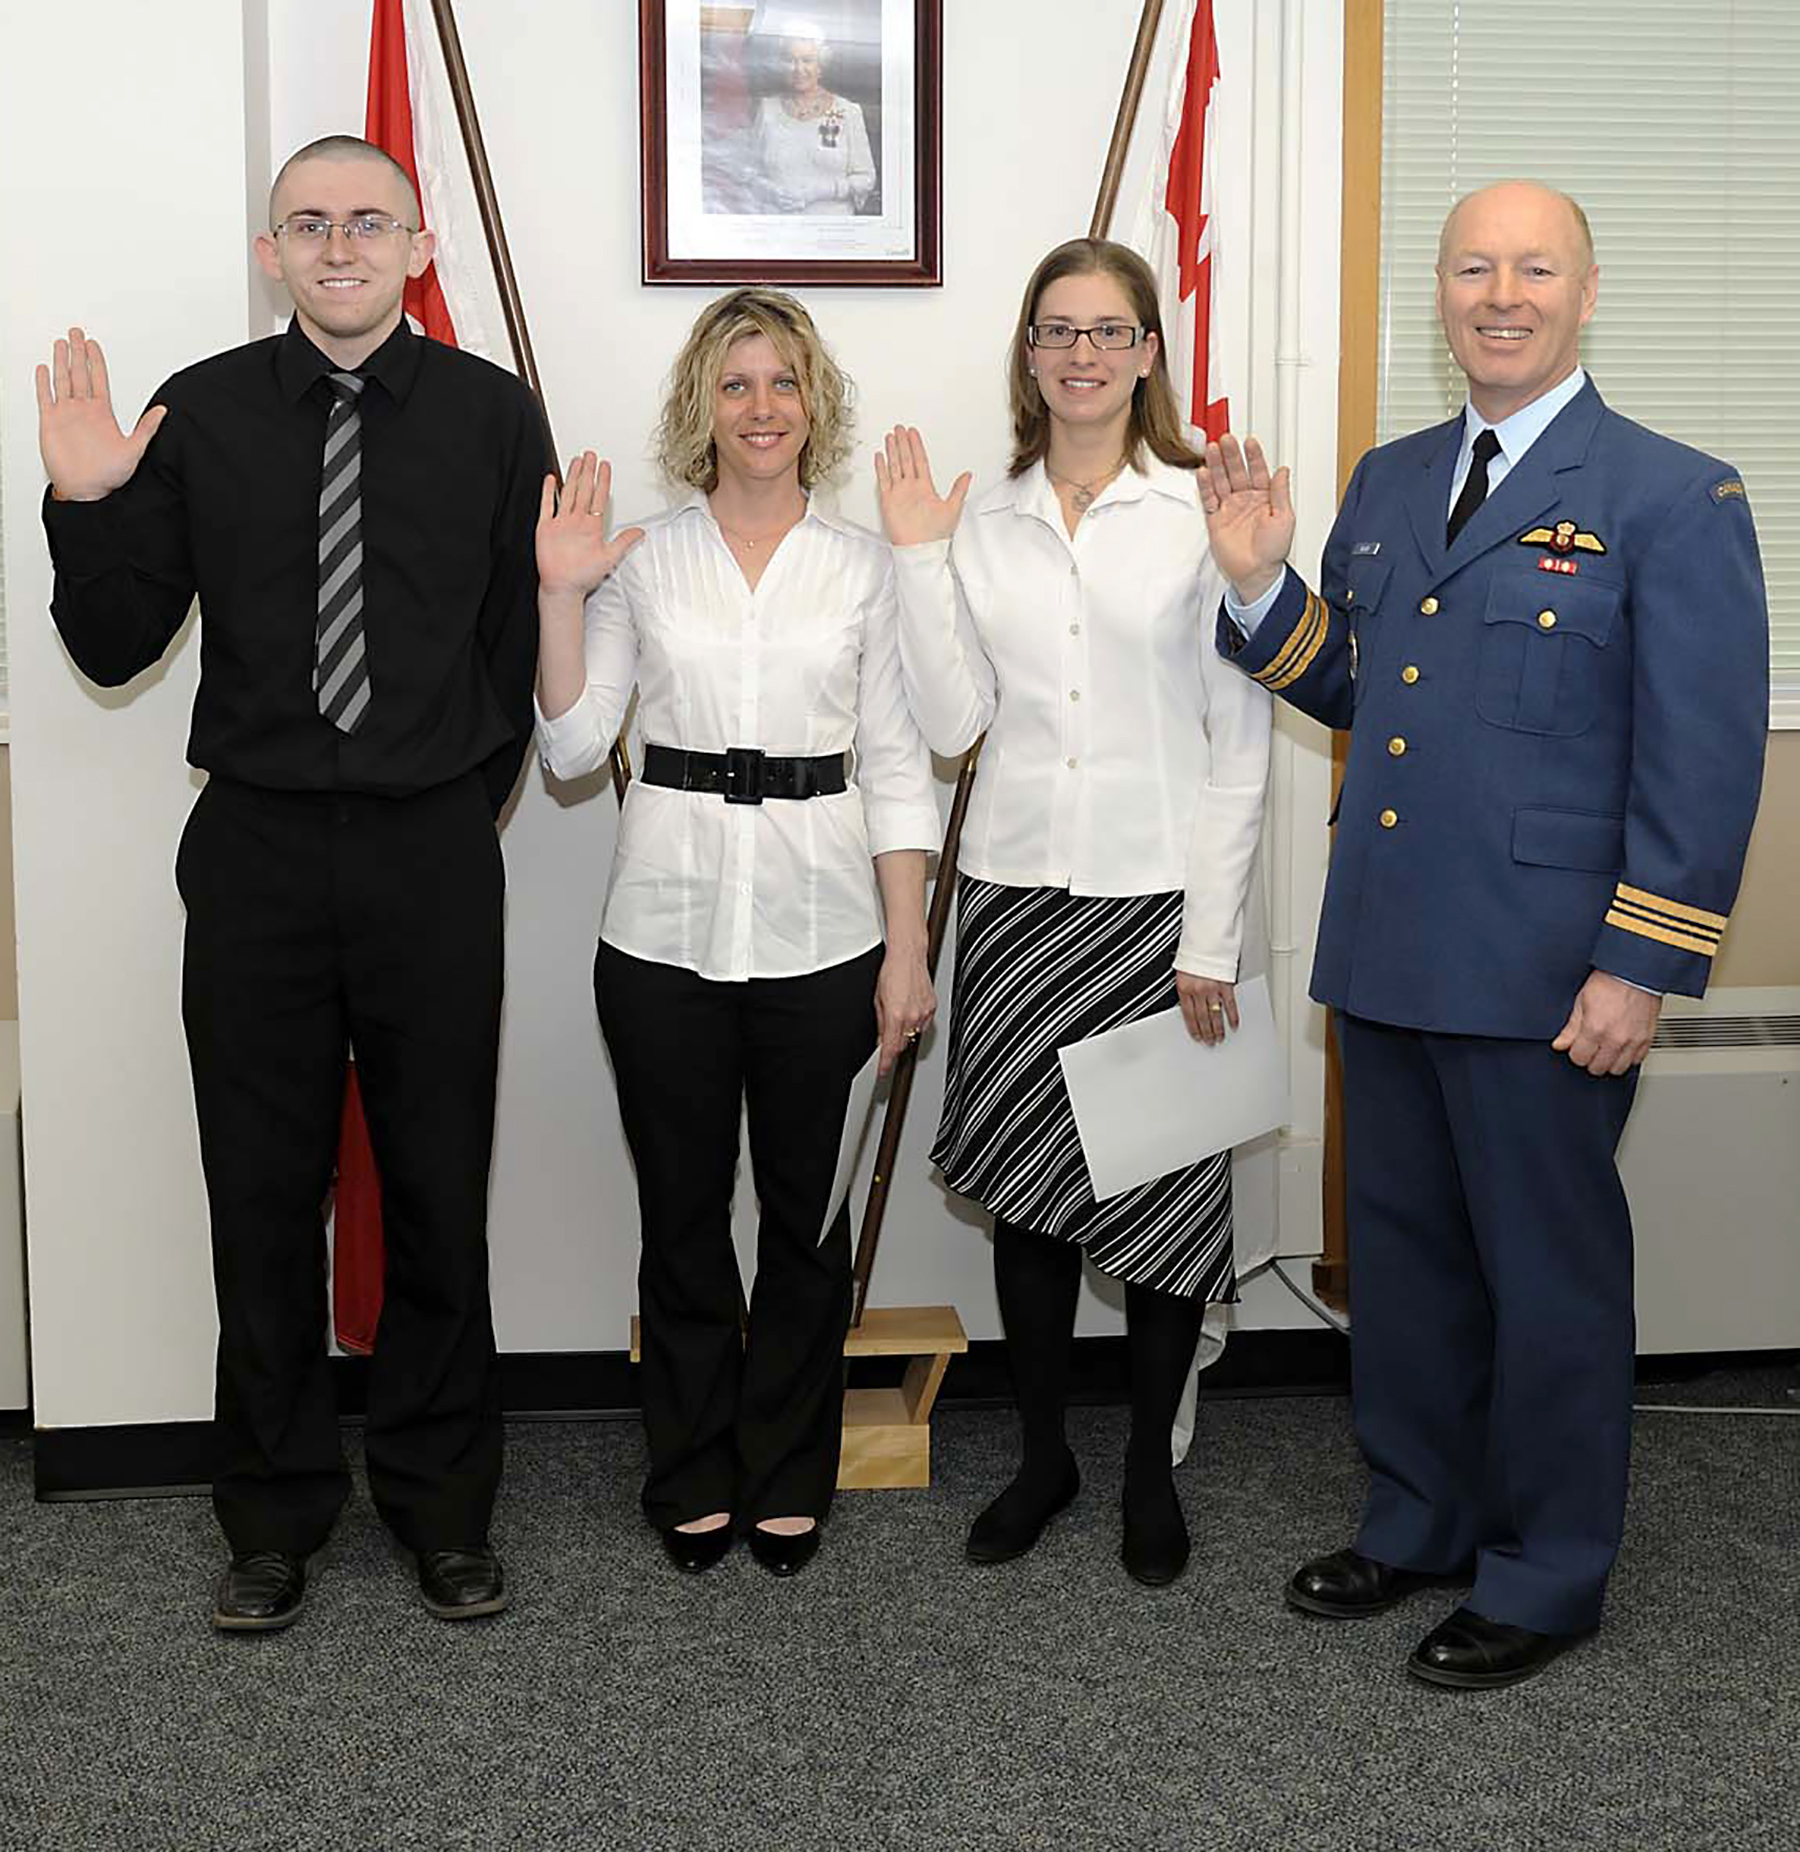 On April 1, 2010, in the United States Conference room of building 7A at 22 Wing North Bay, Ontario, Private Donivan Hart (left), Officer Cadet Christine Bolan, and Private Anne-Marie Dubois-Mayhew are sworn in as new members of 22 Wing Air Reserve by 22 Air Reserve Flight's commander, Major John Blair. PHOTO: Corporal Samantha Crowe, NB2010-0060-07